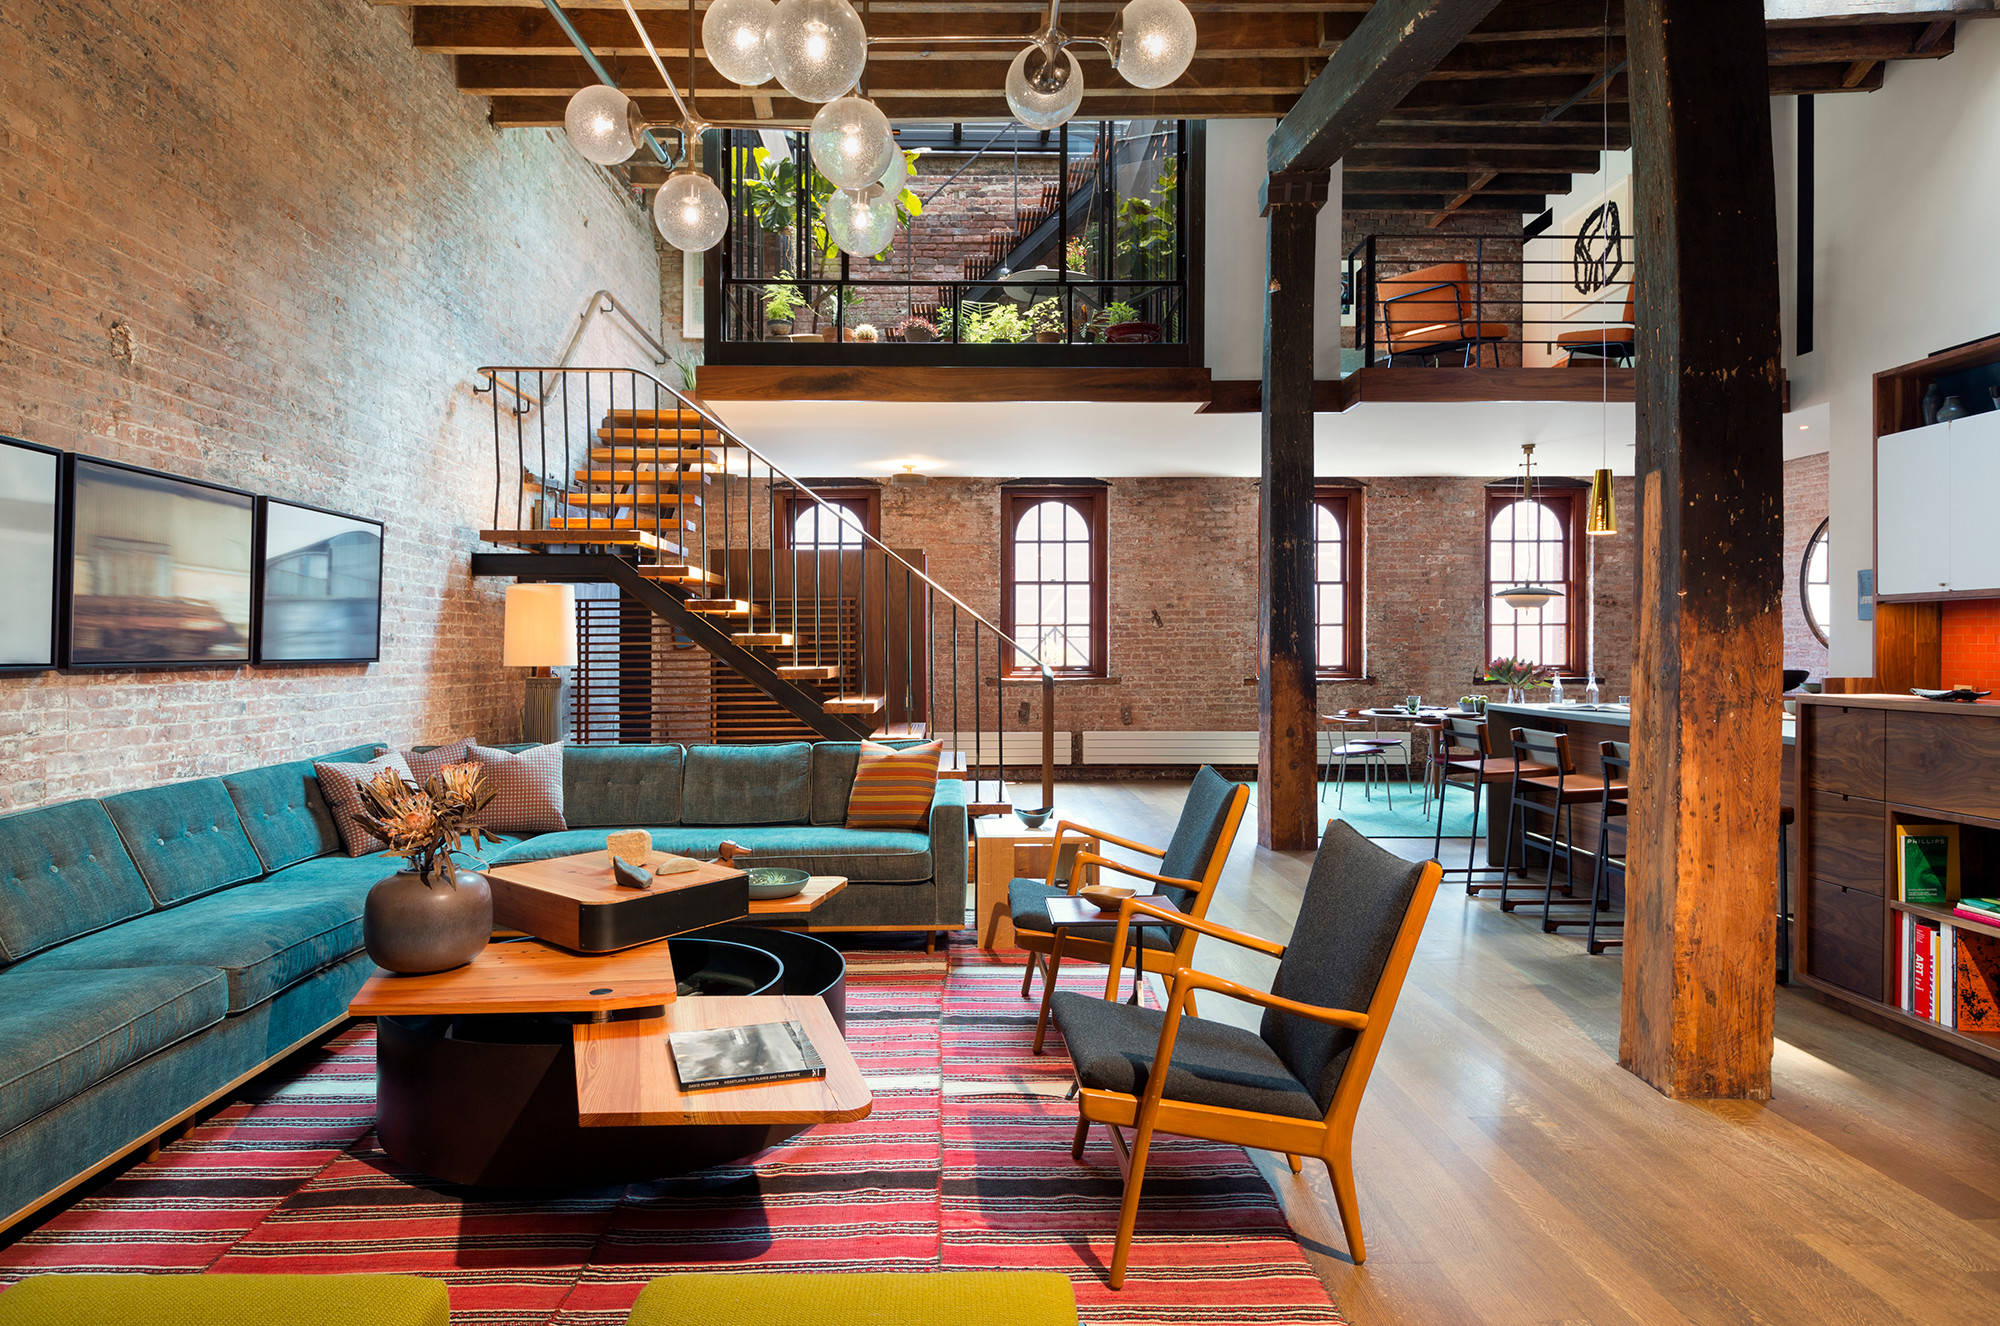 75 Beautiful Industrial Living Room Pictures Ideas December 2020 Houzz